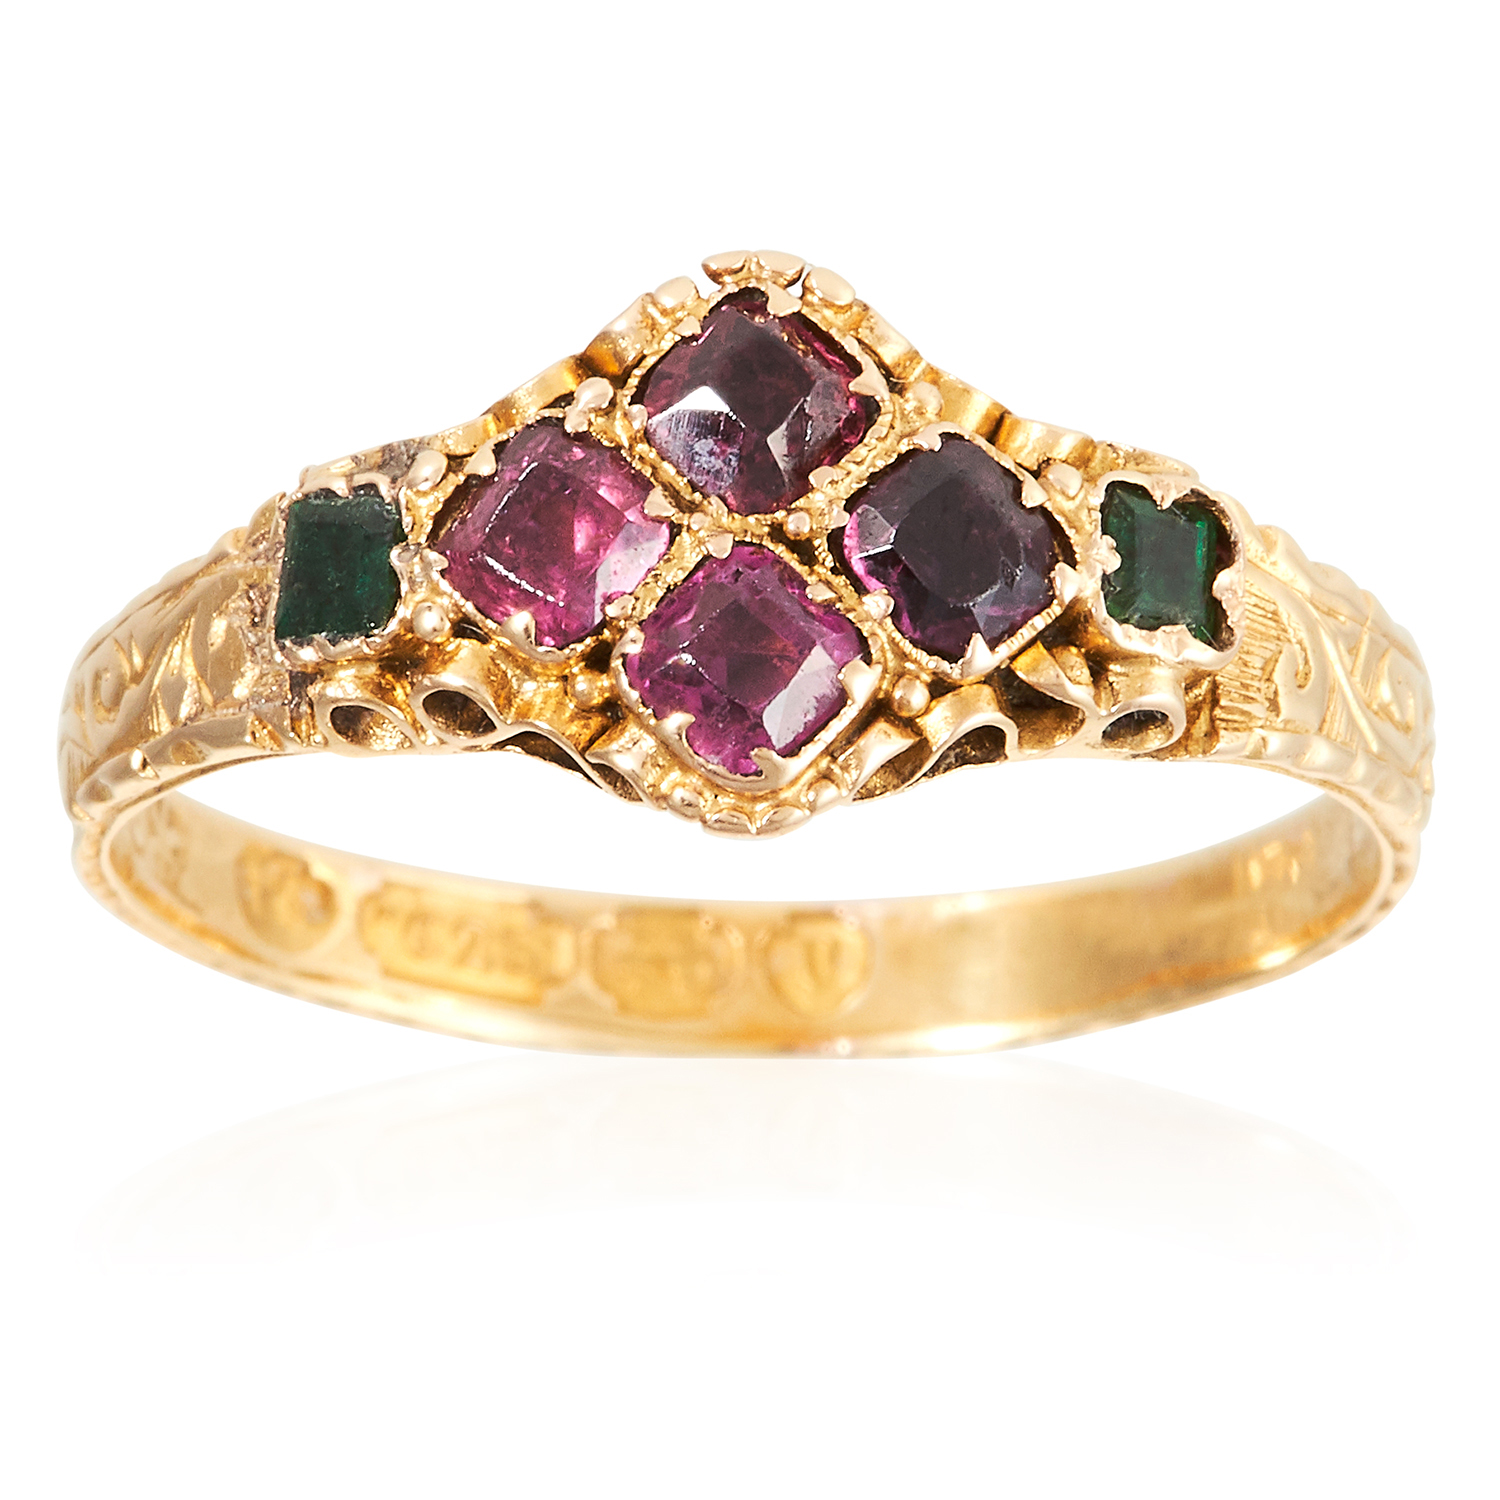 Los 28 - AN ANTIQUE GARNET AND EMERALD RING, CIRCA 1870 in 15 carat yellow gold, set with a quatrefoil